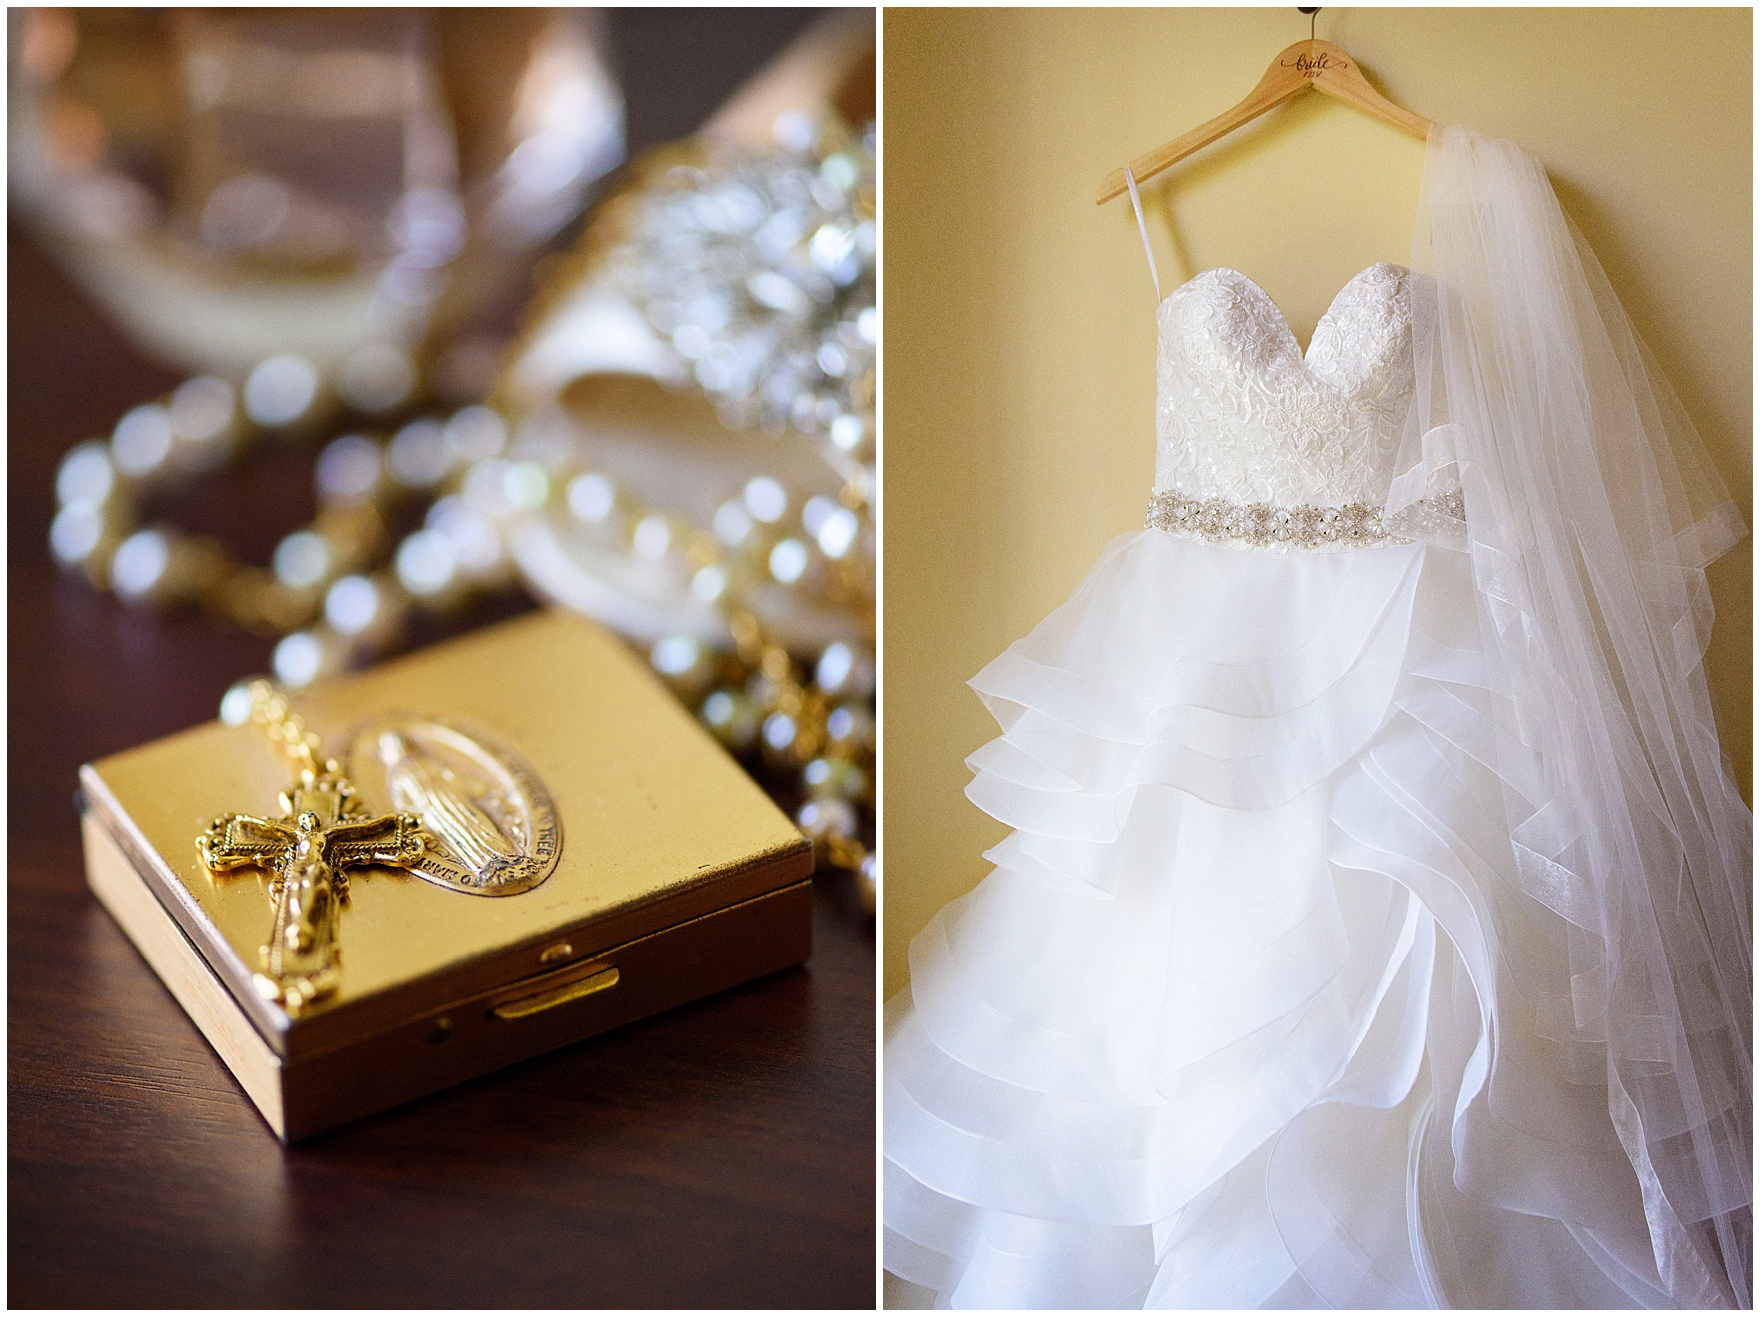 Detail of the bride's dress and rosary for a University of Notre Dame wedding.